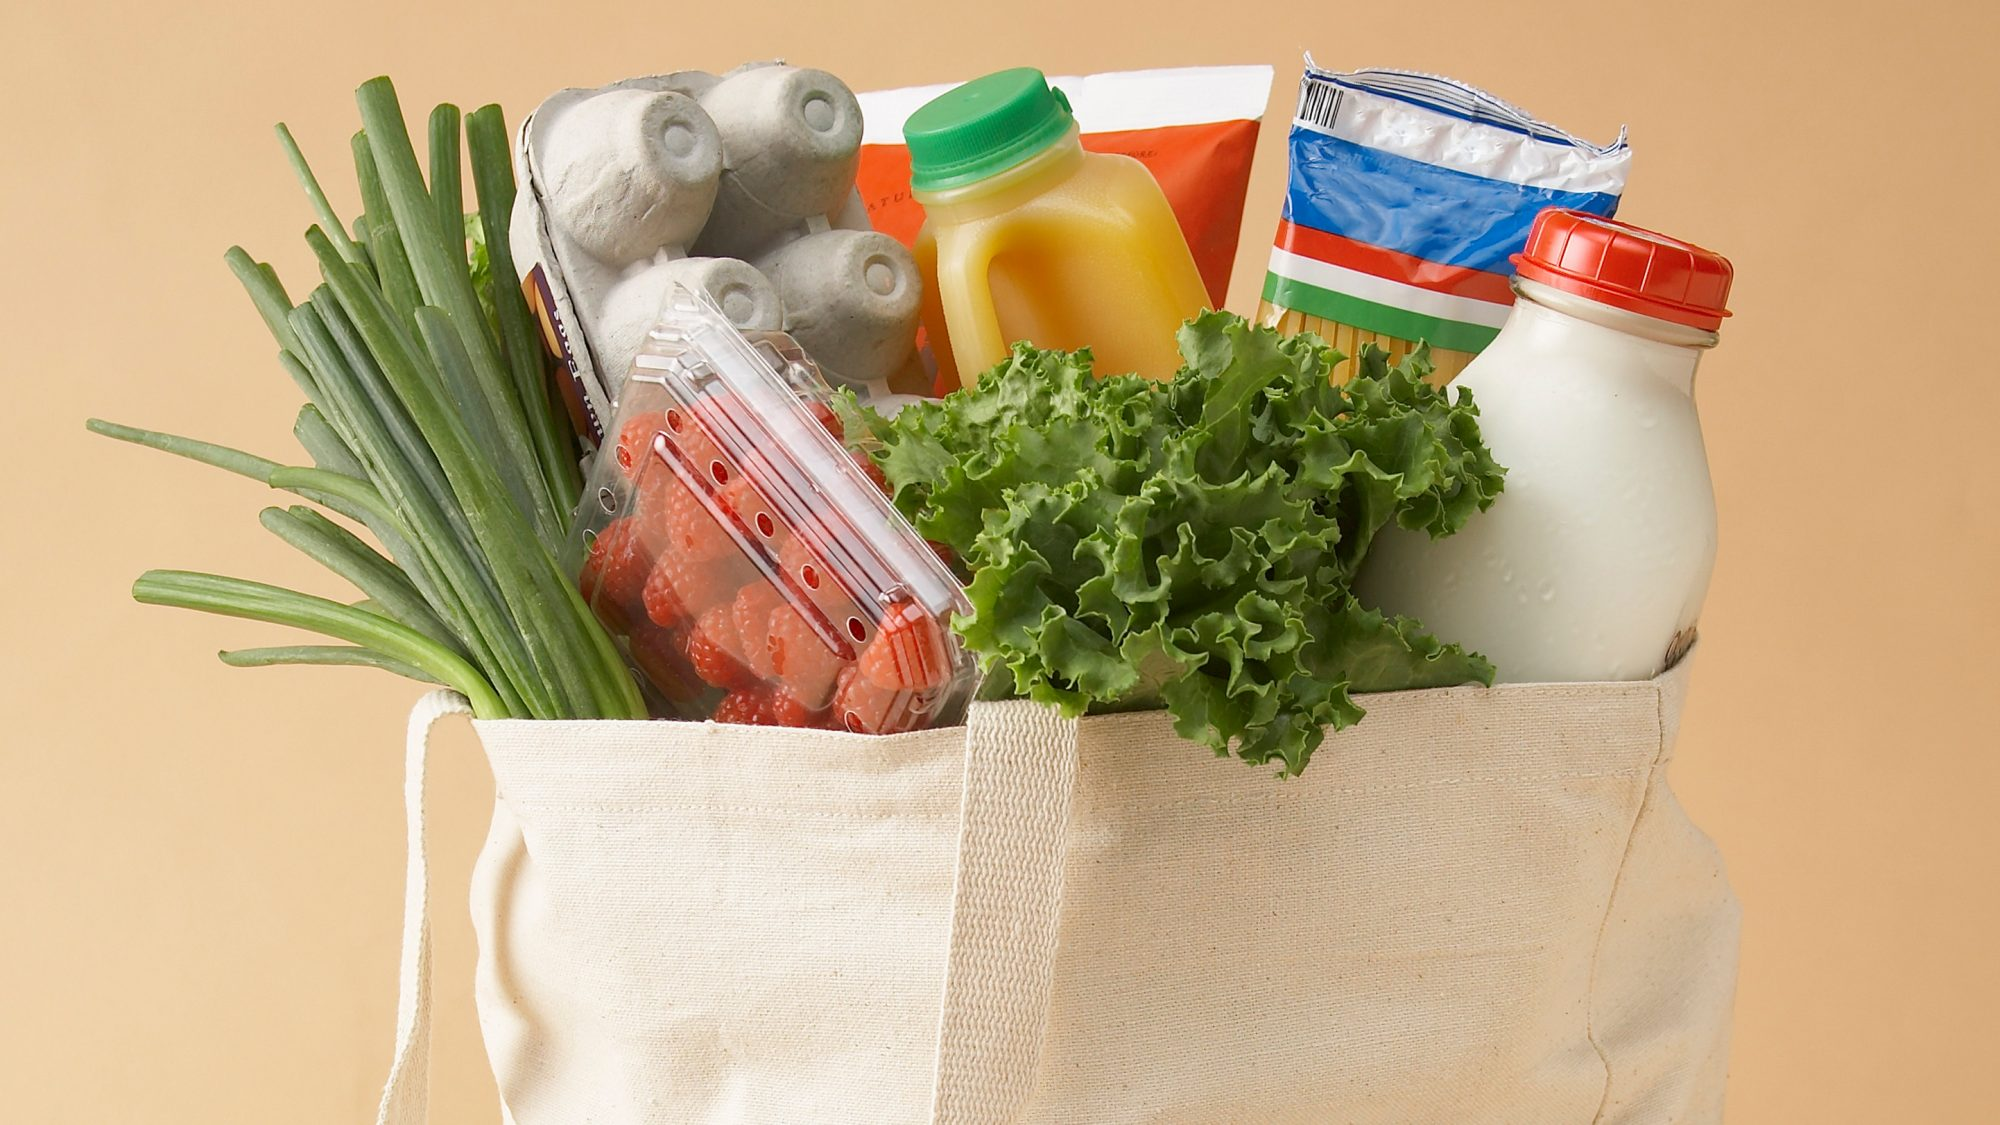 How to Help Others During the Coronavirus Crisis, bag of groceries